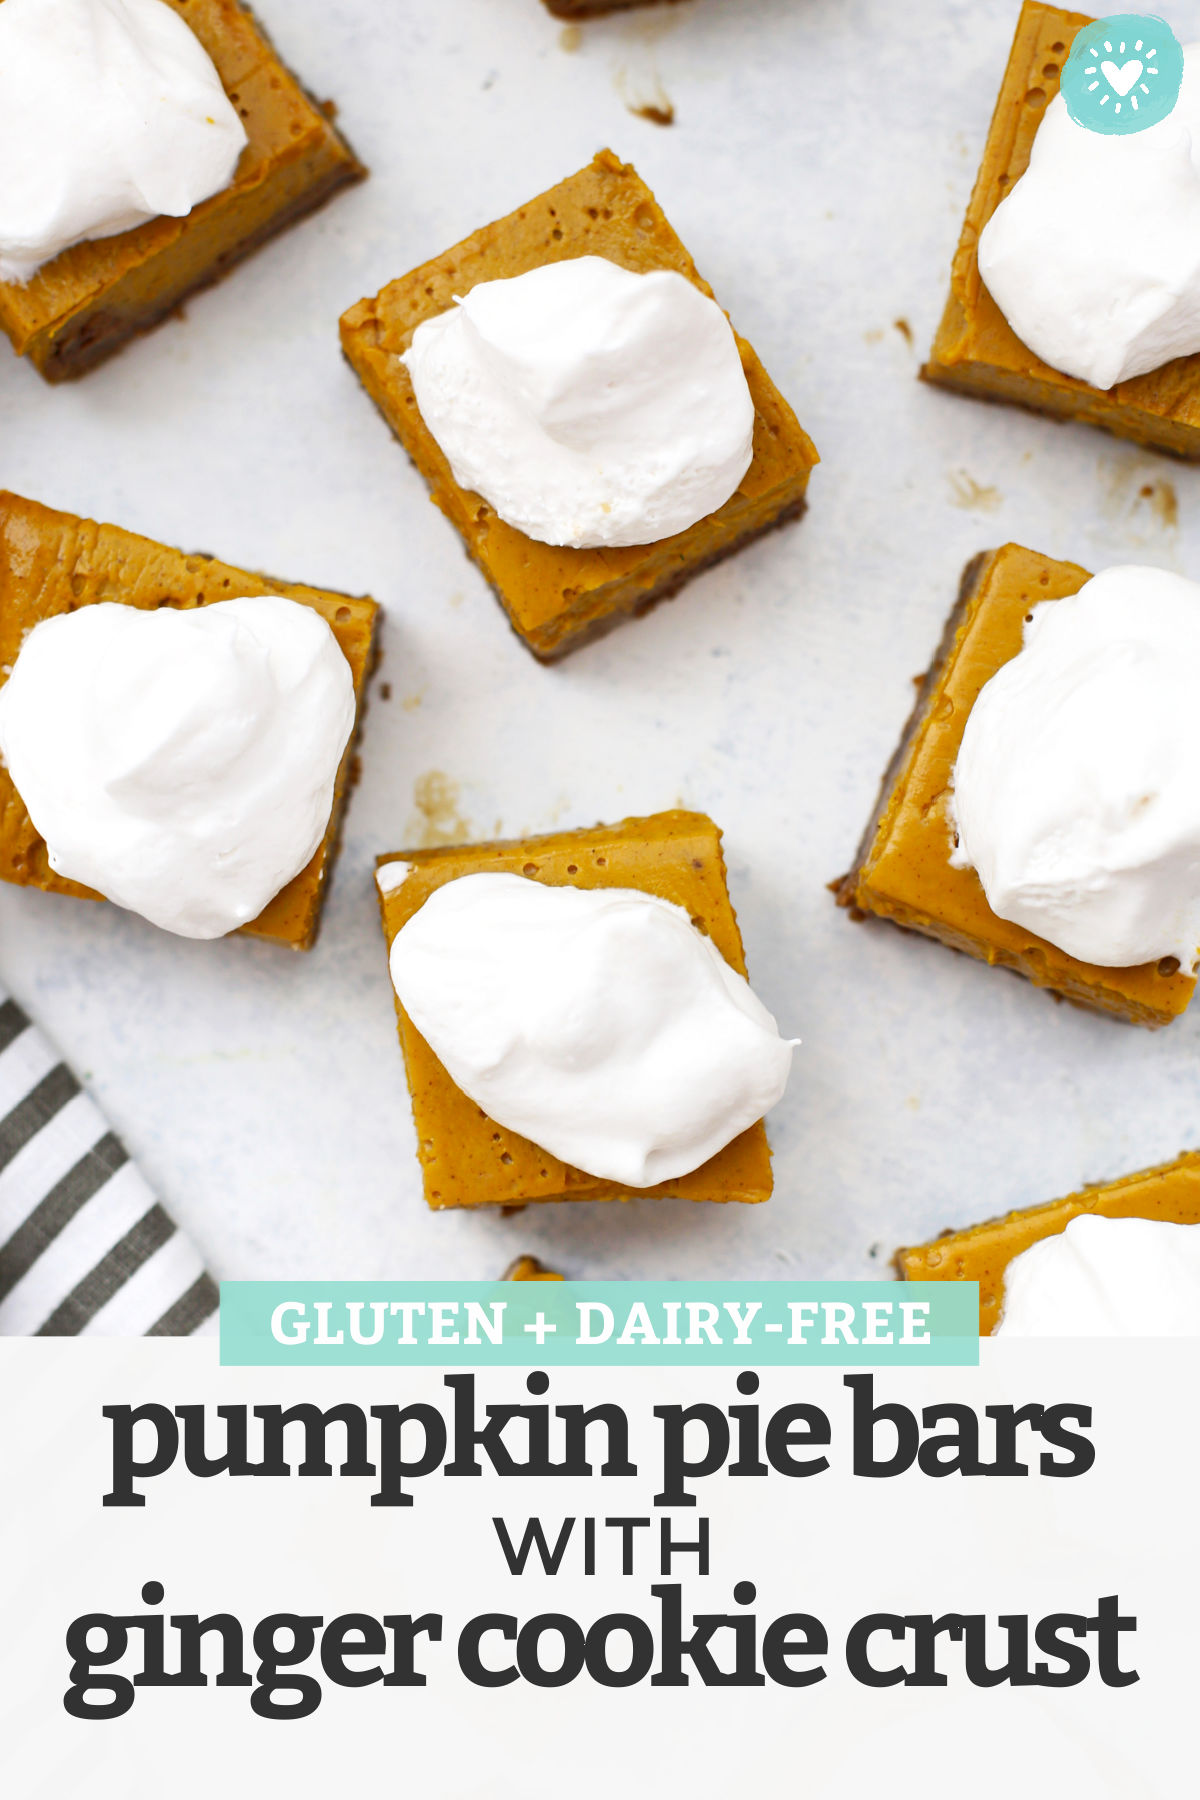 Gluten-Free Pumpkin Pie Bars with Ginger Cookie Crust – Swap out the pumpkin pie for these easy gluten-free pumpkin pie bars. The cookie crust makes them so easy! They slice and serve like a dream! Dairy-free pumpkin pie bars // Pumpkin Pie Bars recipe // Thanksgiving Dessert // Holiday Dessert // Fall Dessert #pie #pumpkinpie #glutenfree #thanskgiving